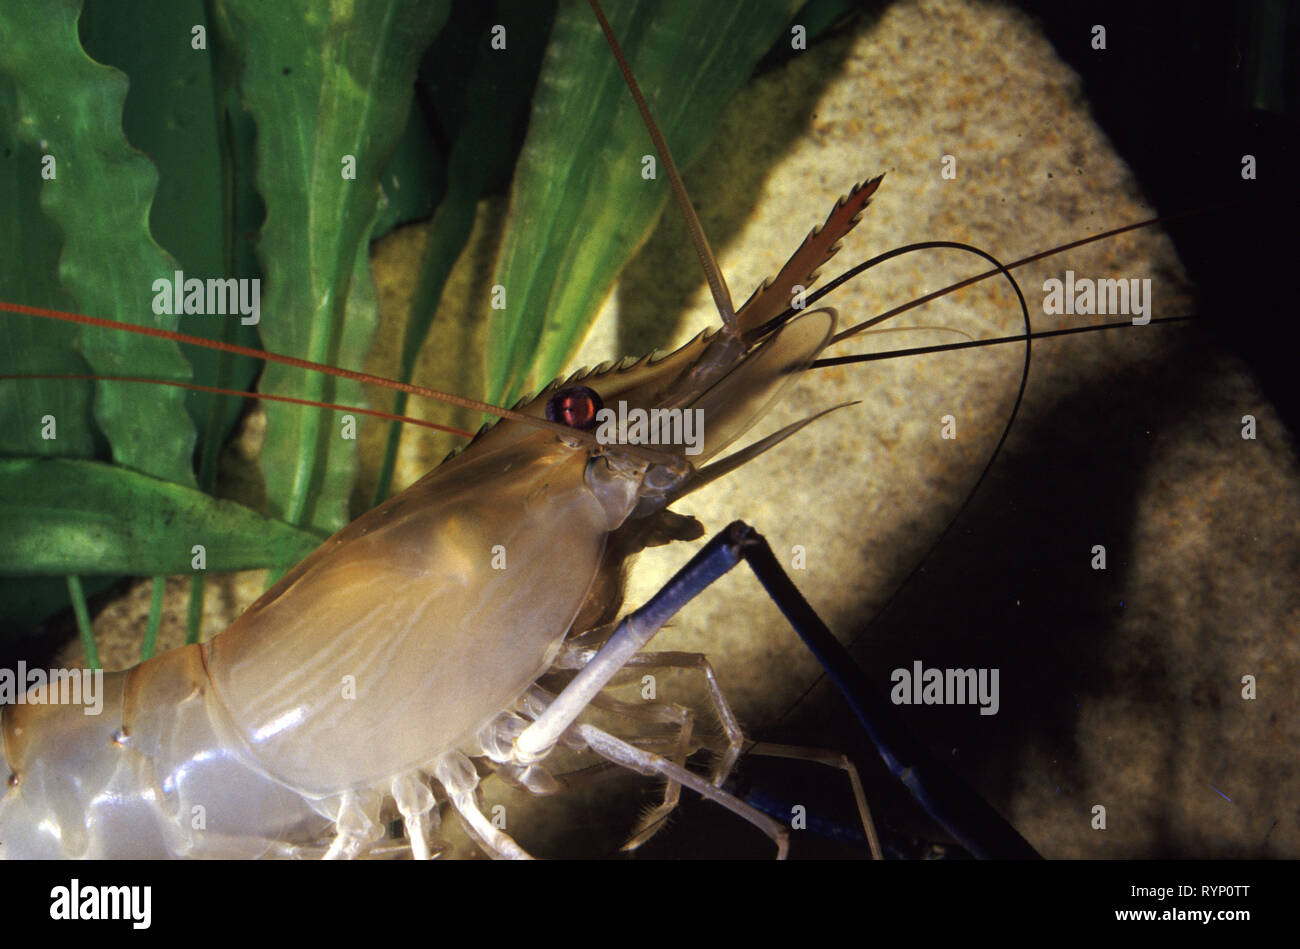 Giant Freshwater Prawn Stock Photos & Giant Freshwater Prawn